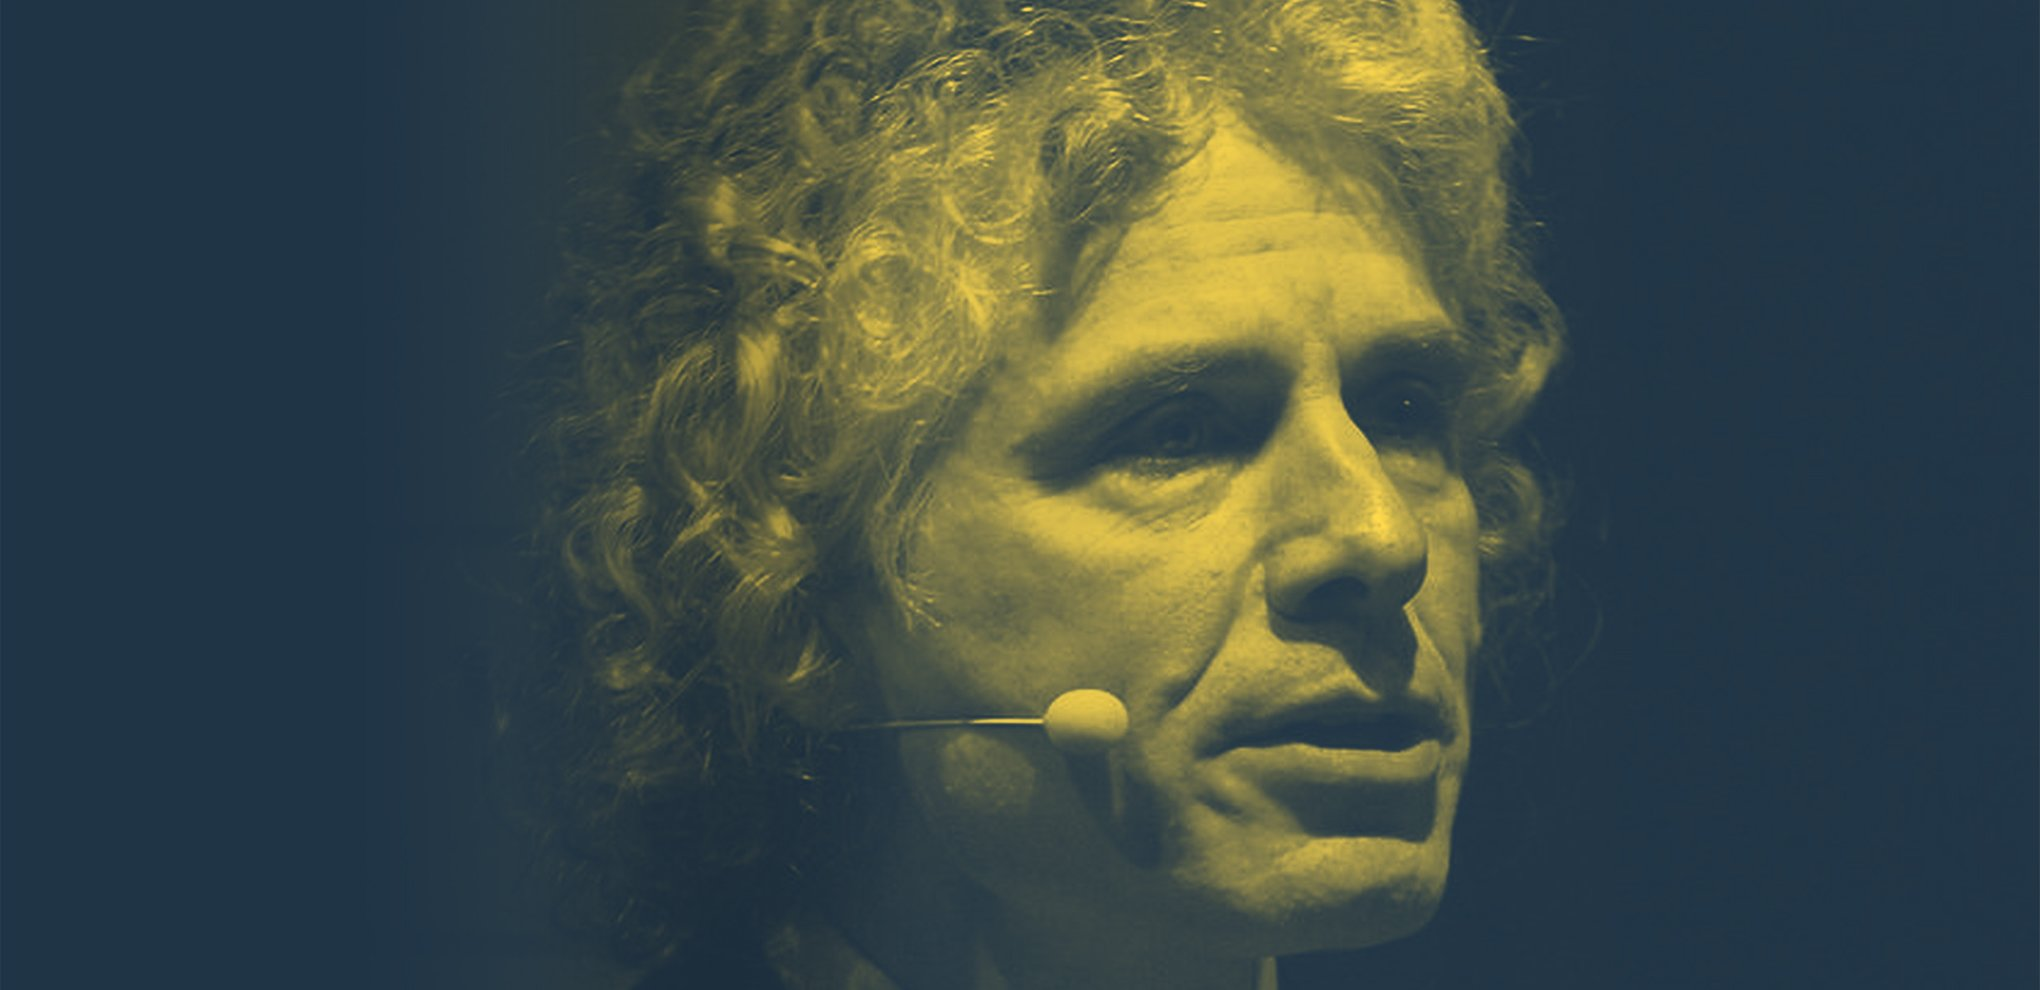 Nick Spencer reviews Steven Pinker's latest book and challenges his ideas of progress and Enlightenment.